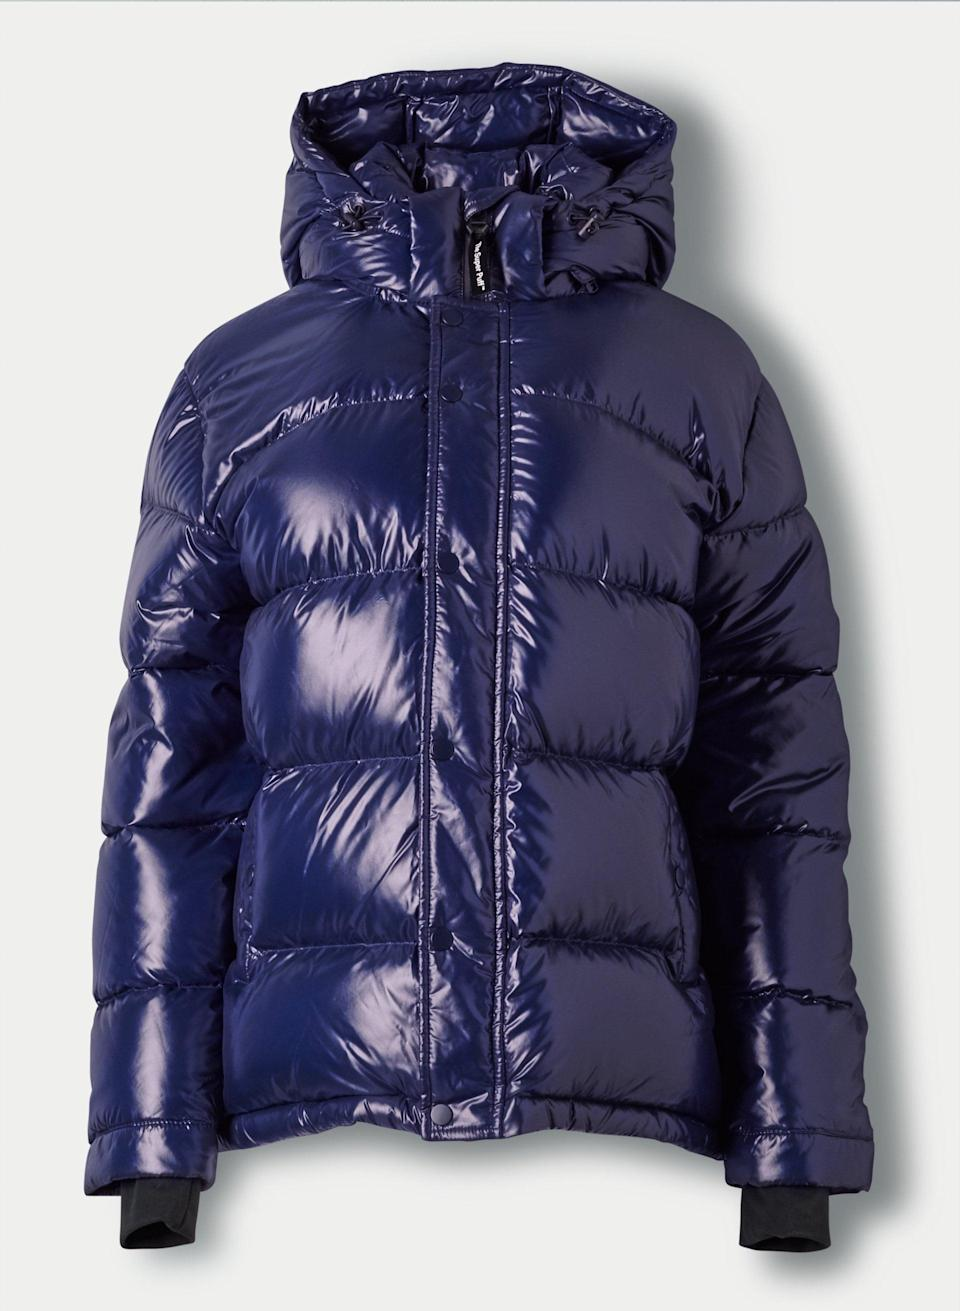 "<p>""<span>Aritzia's Super Puff Jacket</span> ($250) is the ultimate puffer. With 100 percent sustainably-sourced goose-down, this jacket is designed to keep you warm in sub-zero temperatures, while the design - especially this high-gloss finish - is undeniably cool."" </p>"